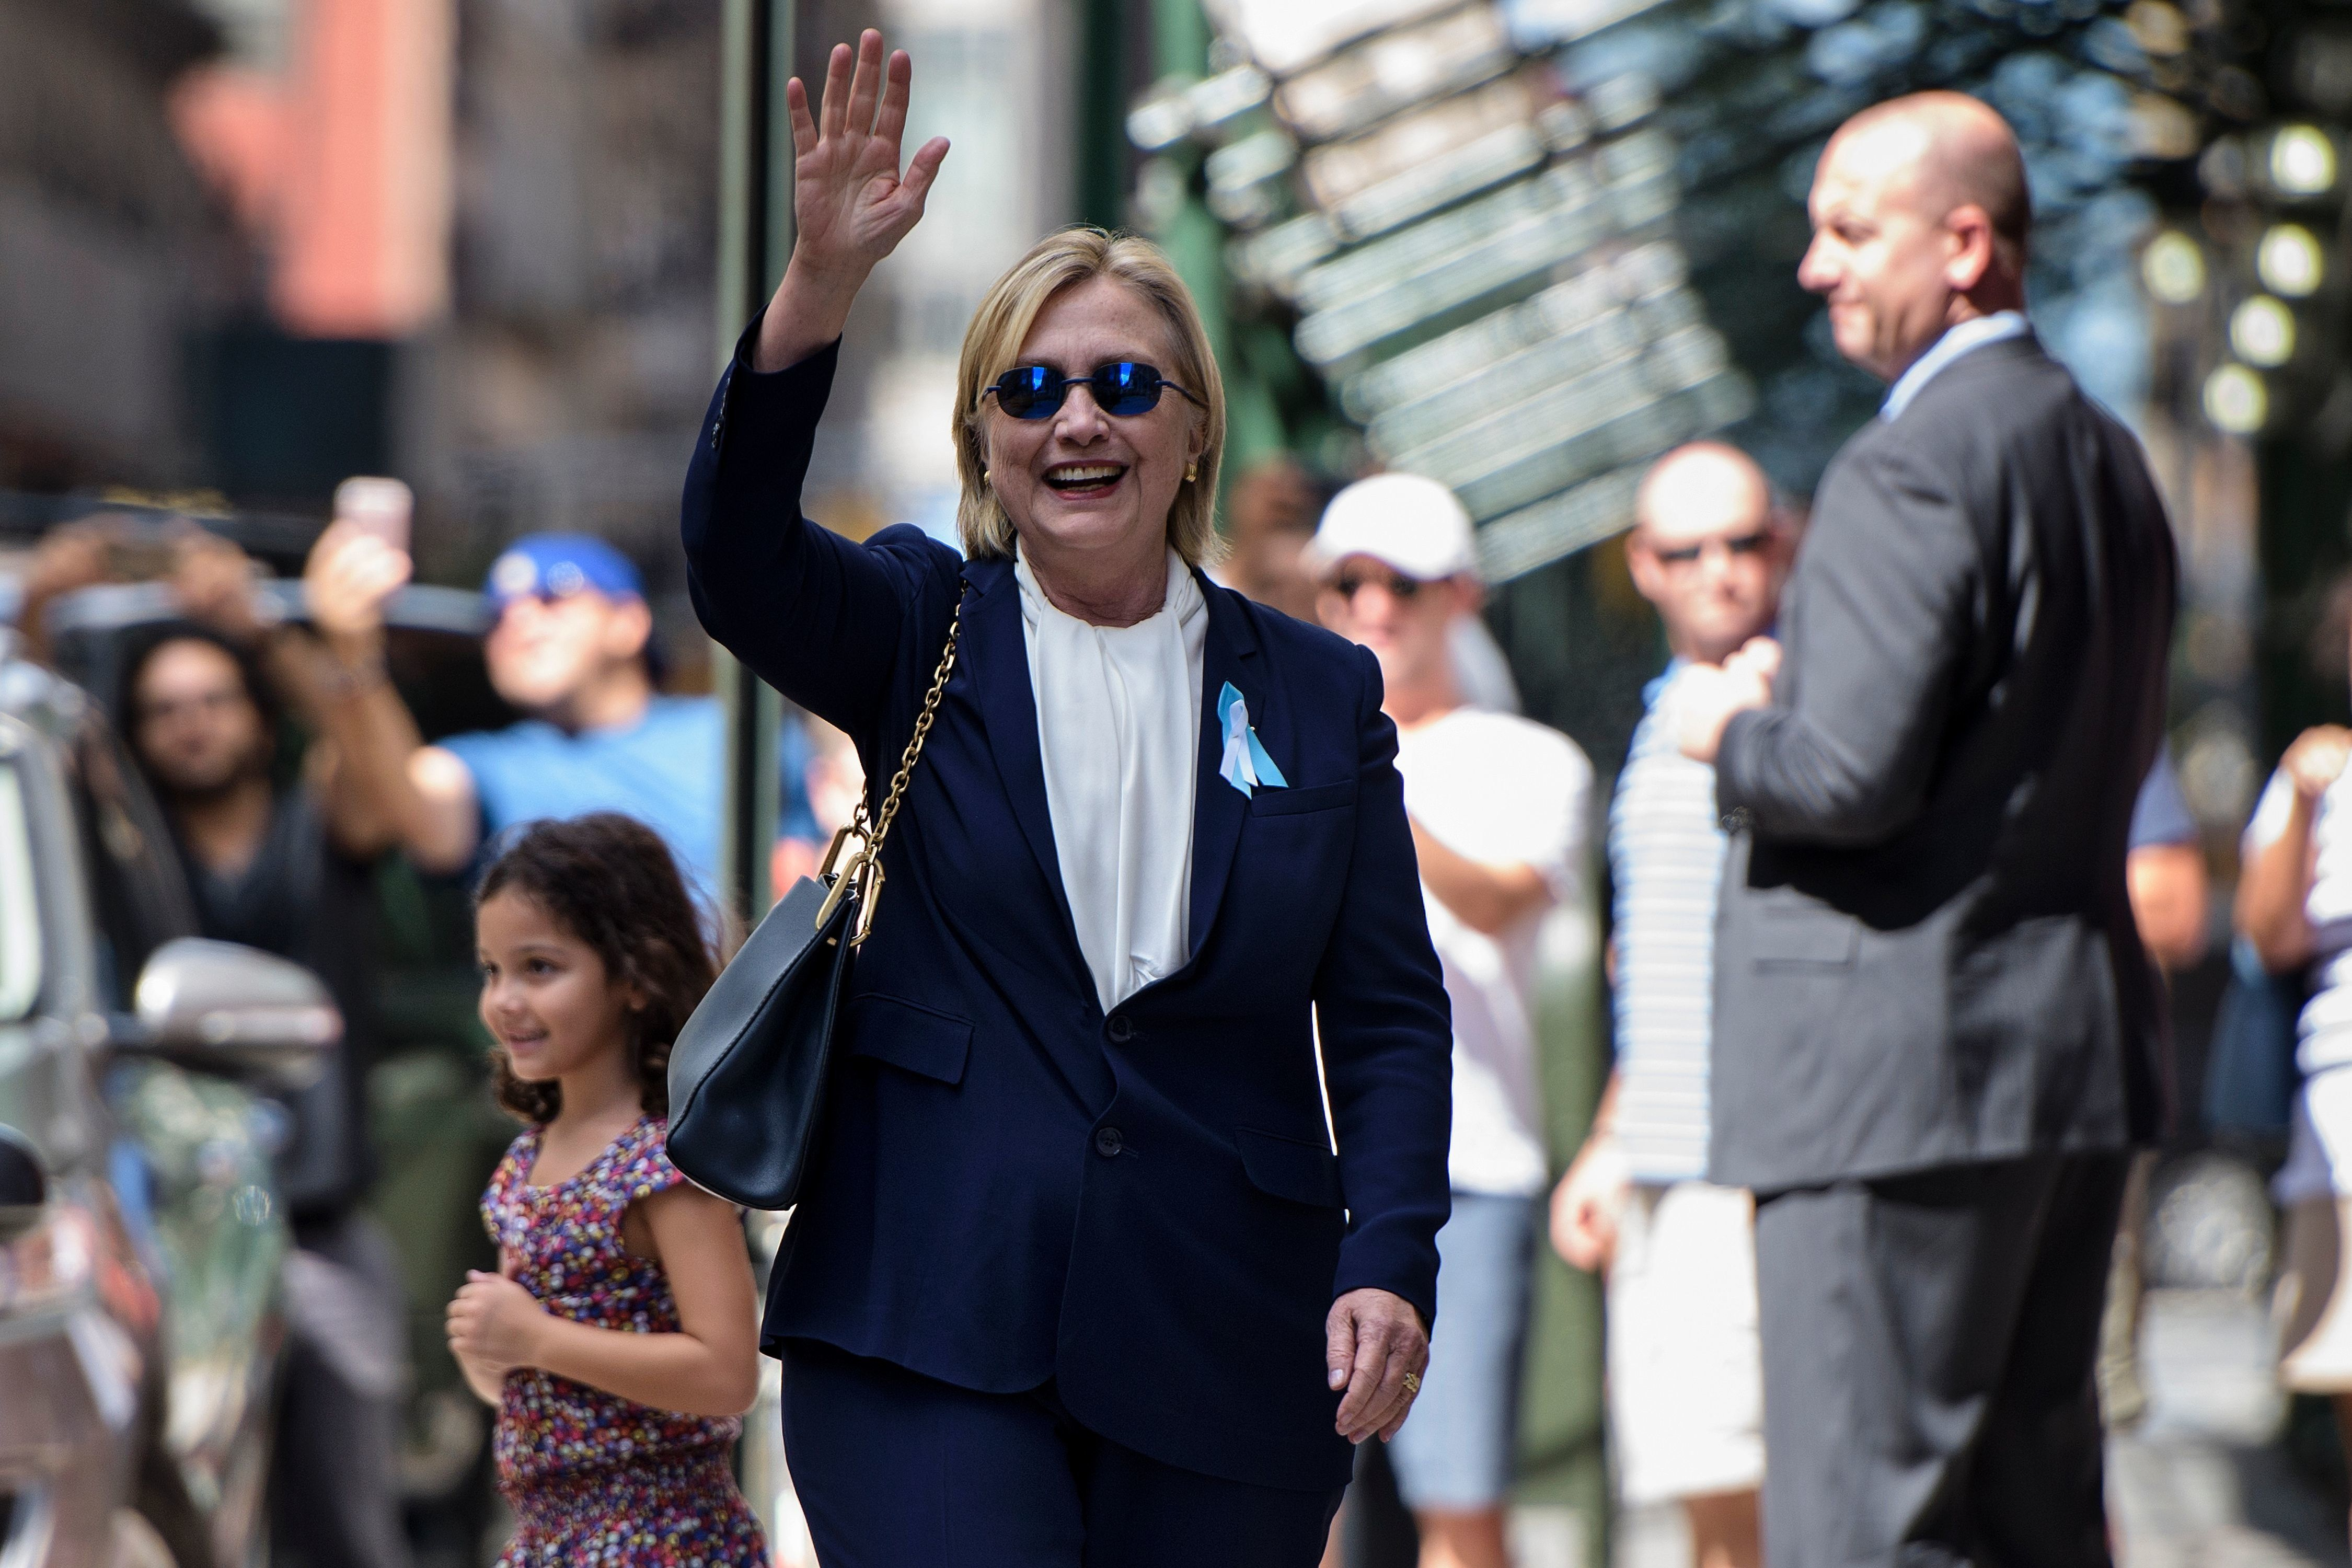 TOPSHOT - US Democratic presidential nominee Hillary Clinton waves to the press as she leaves her daughter's apartment building after resting on September 11, 2016, in New York. Clinton departed from a remembrance ceremony on the 15th anniversary of the 9/11 attacks after feeling 'overheated,' but was later doing 'much better,' her campaign said. / AFP / Brendan Smialowski        (Photo credit should read BRENDAN SMIALOWSKI/AFP/Getty Images)